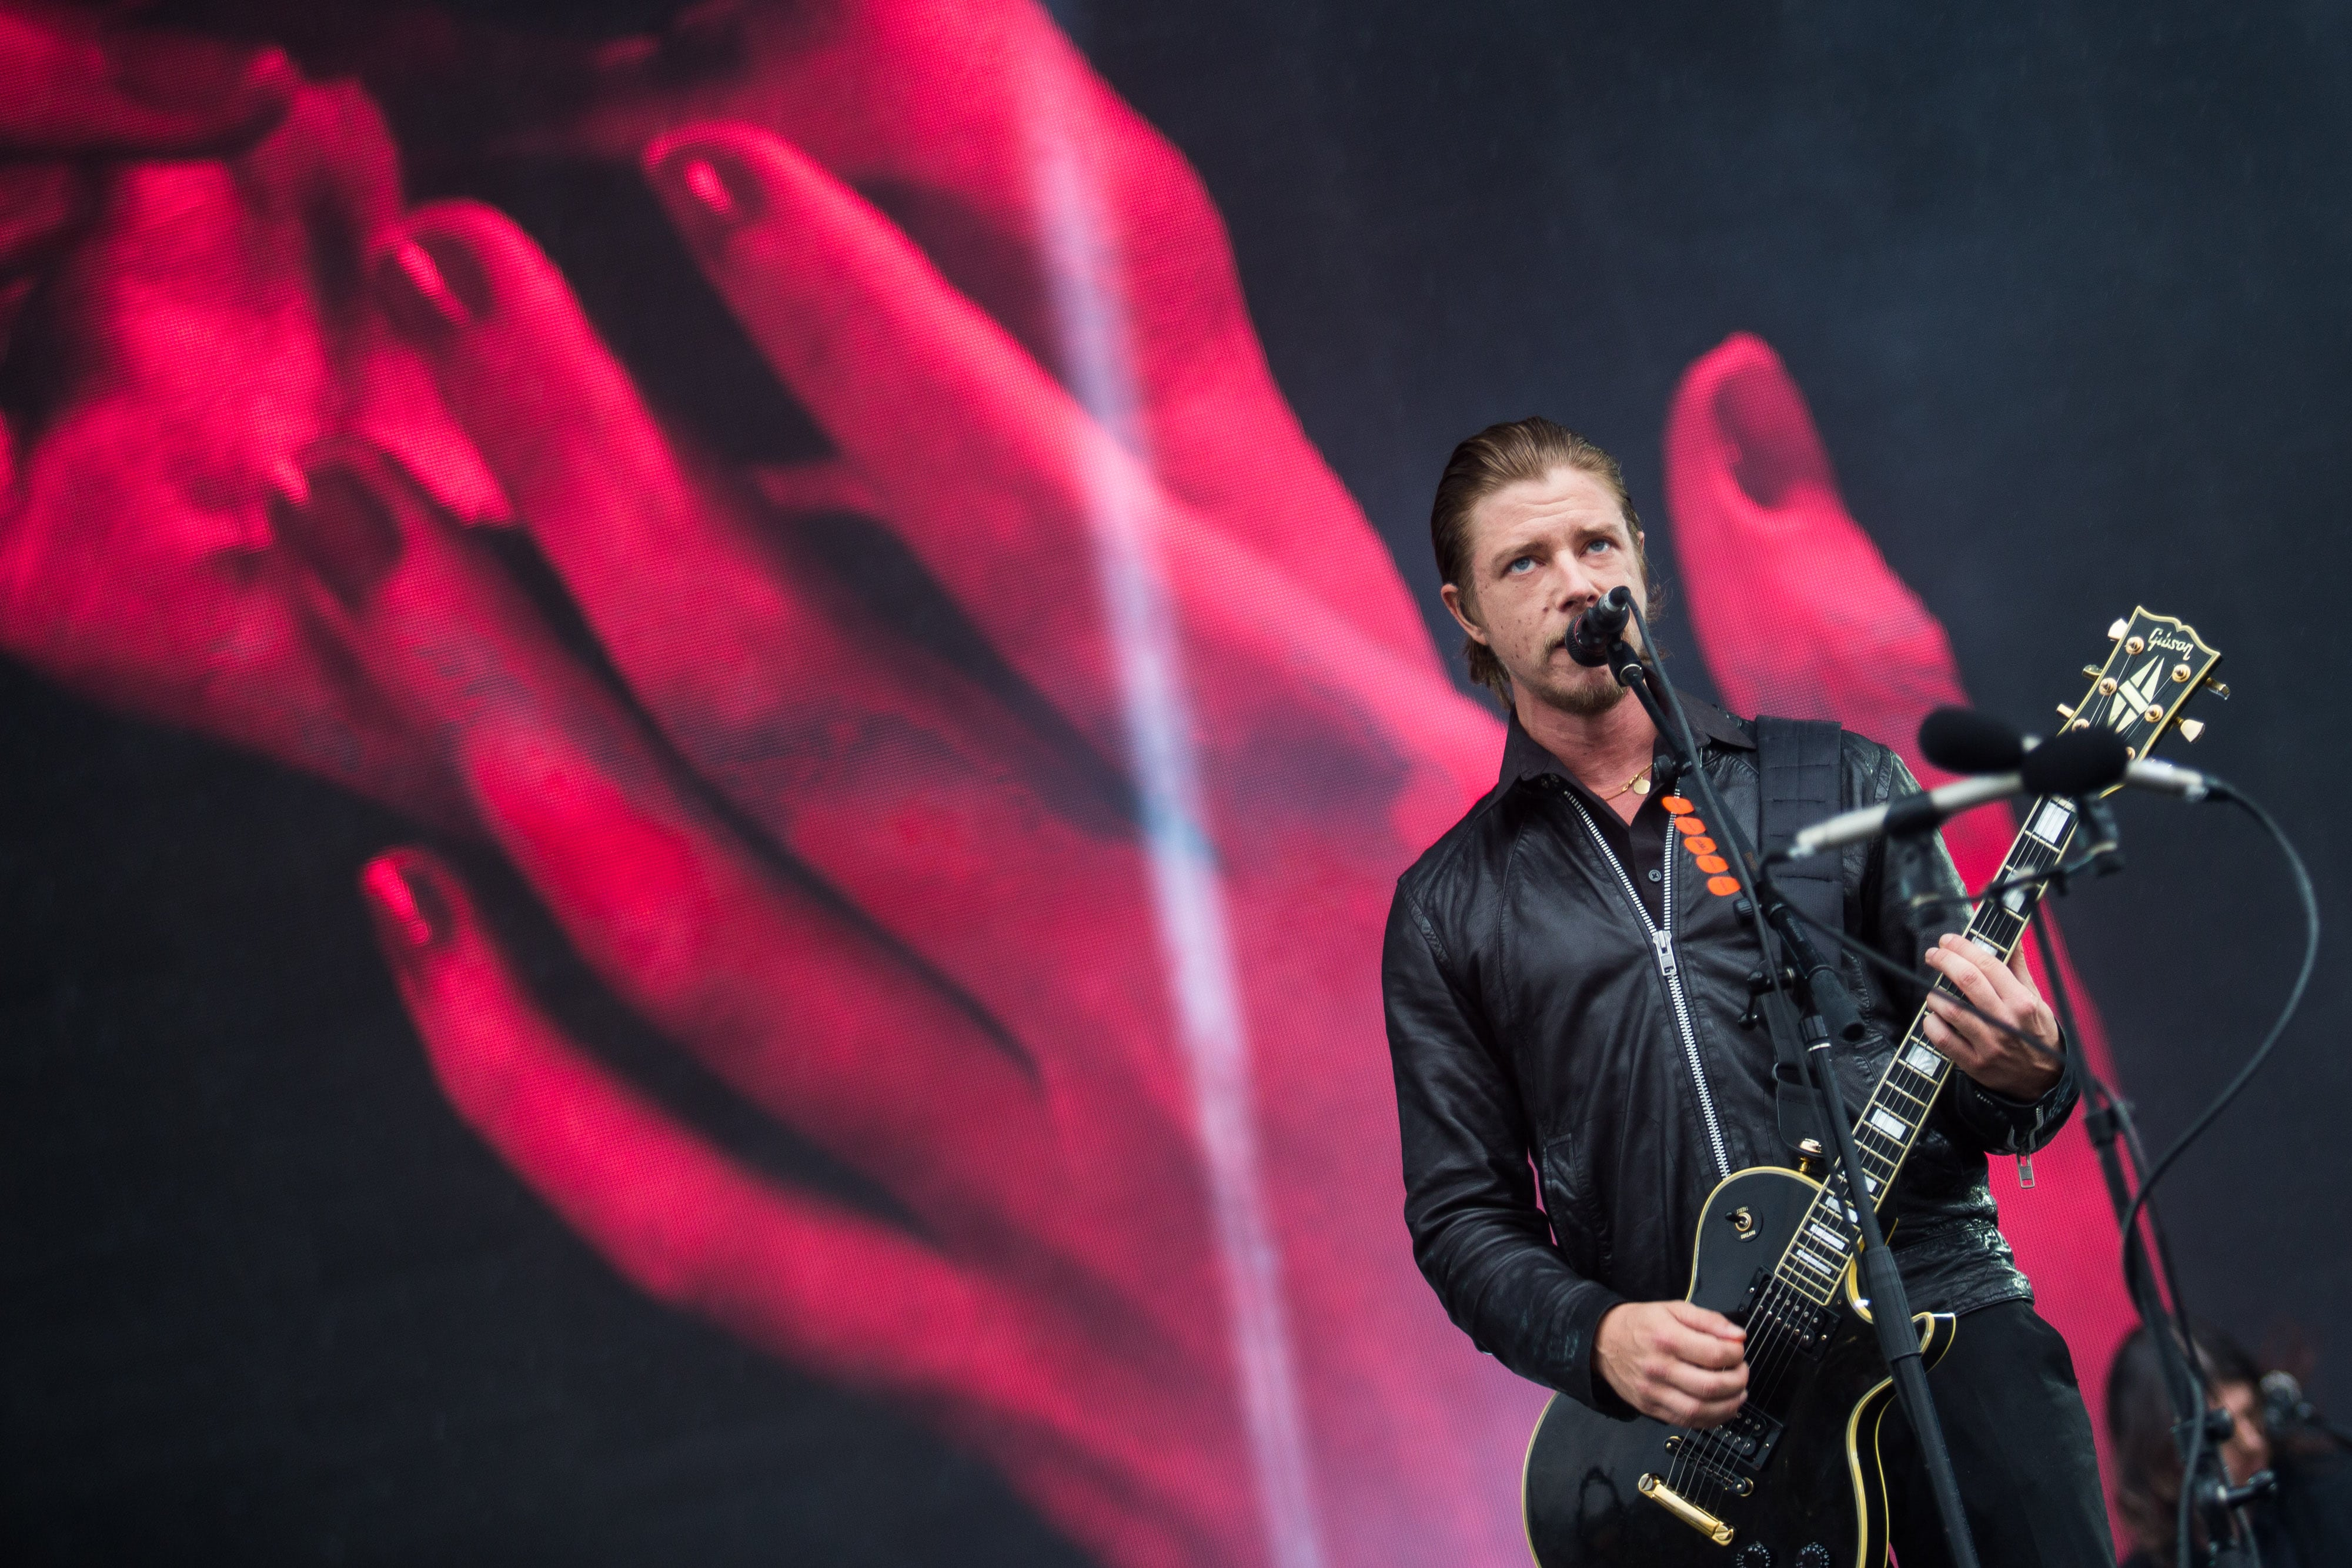 This is How Twitter Reacted After Finding Out Interpol's Paul Banks is a Reggaeton Fan